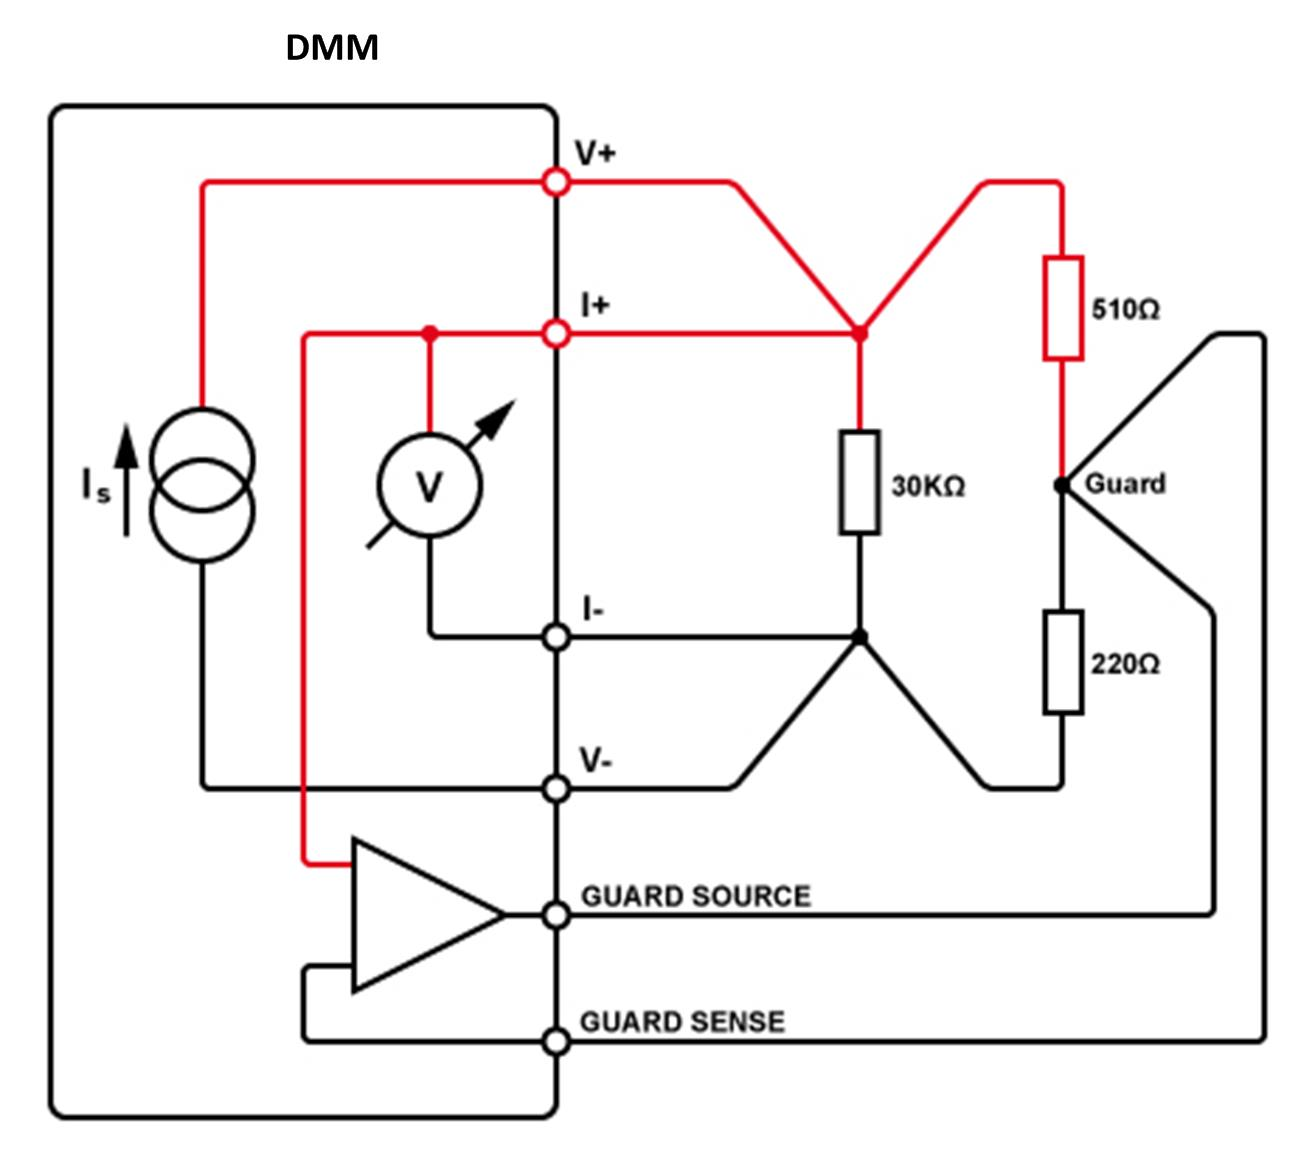 Resistance Measurements with a DMM